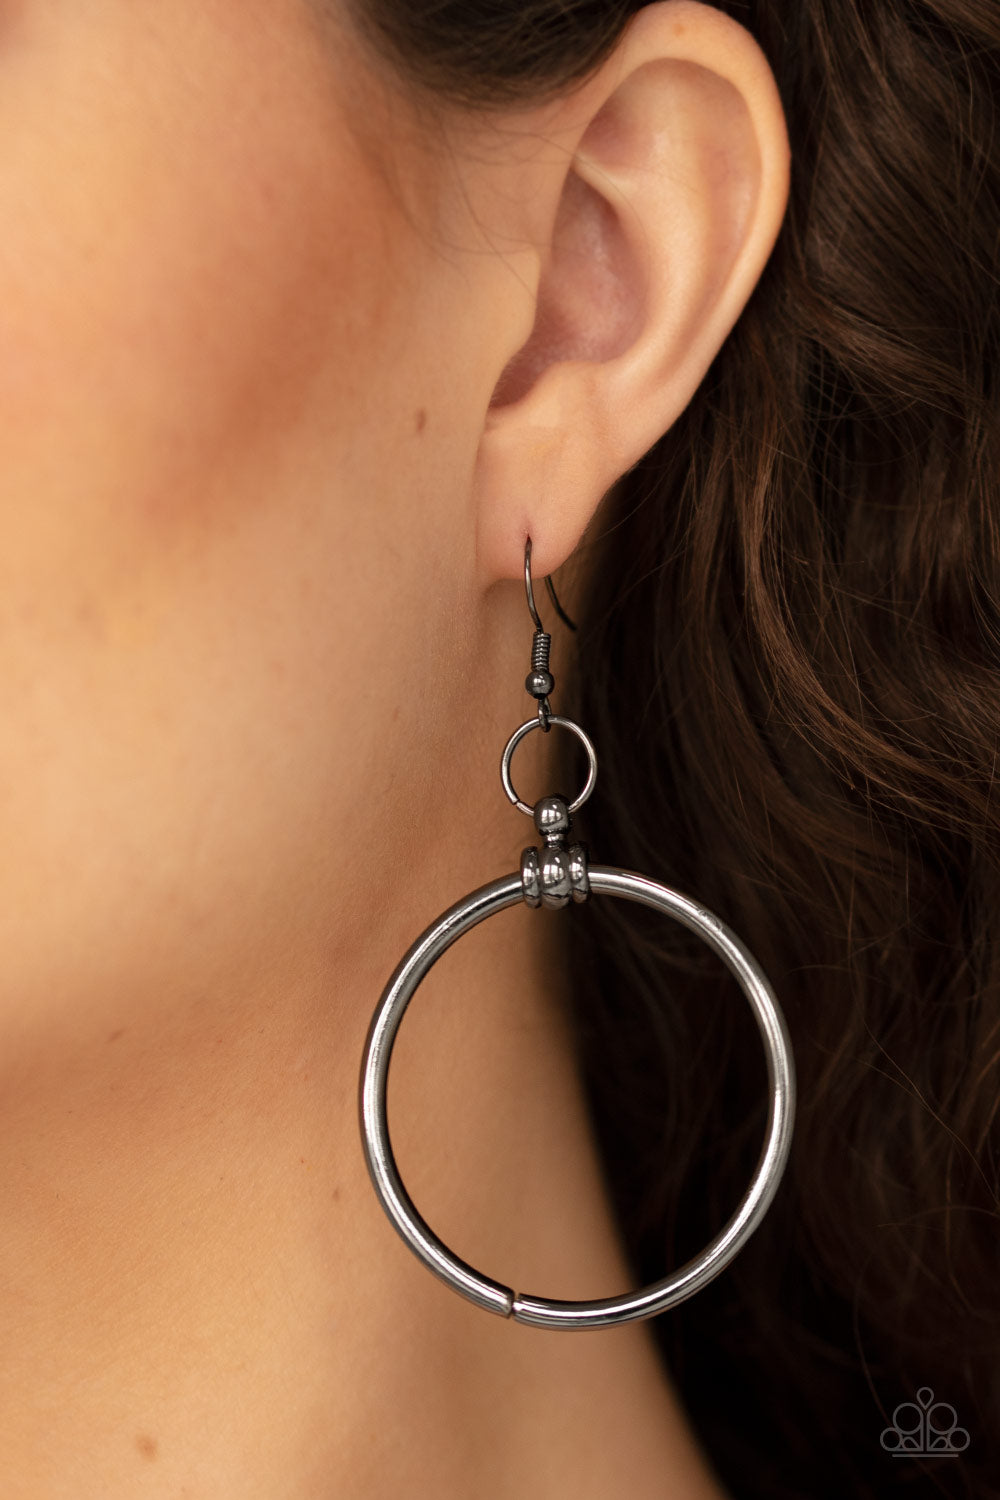 Total Focus - Black Earrings - Paparazzi Accessories